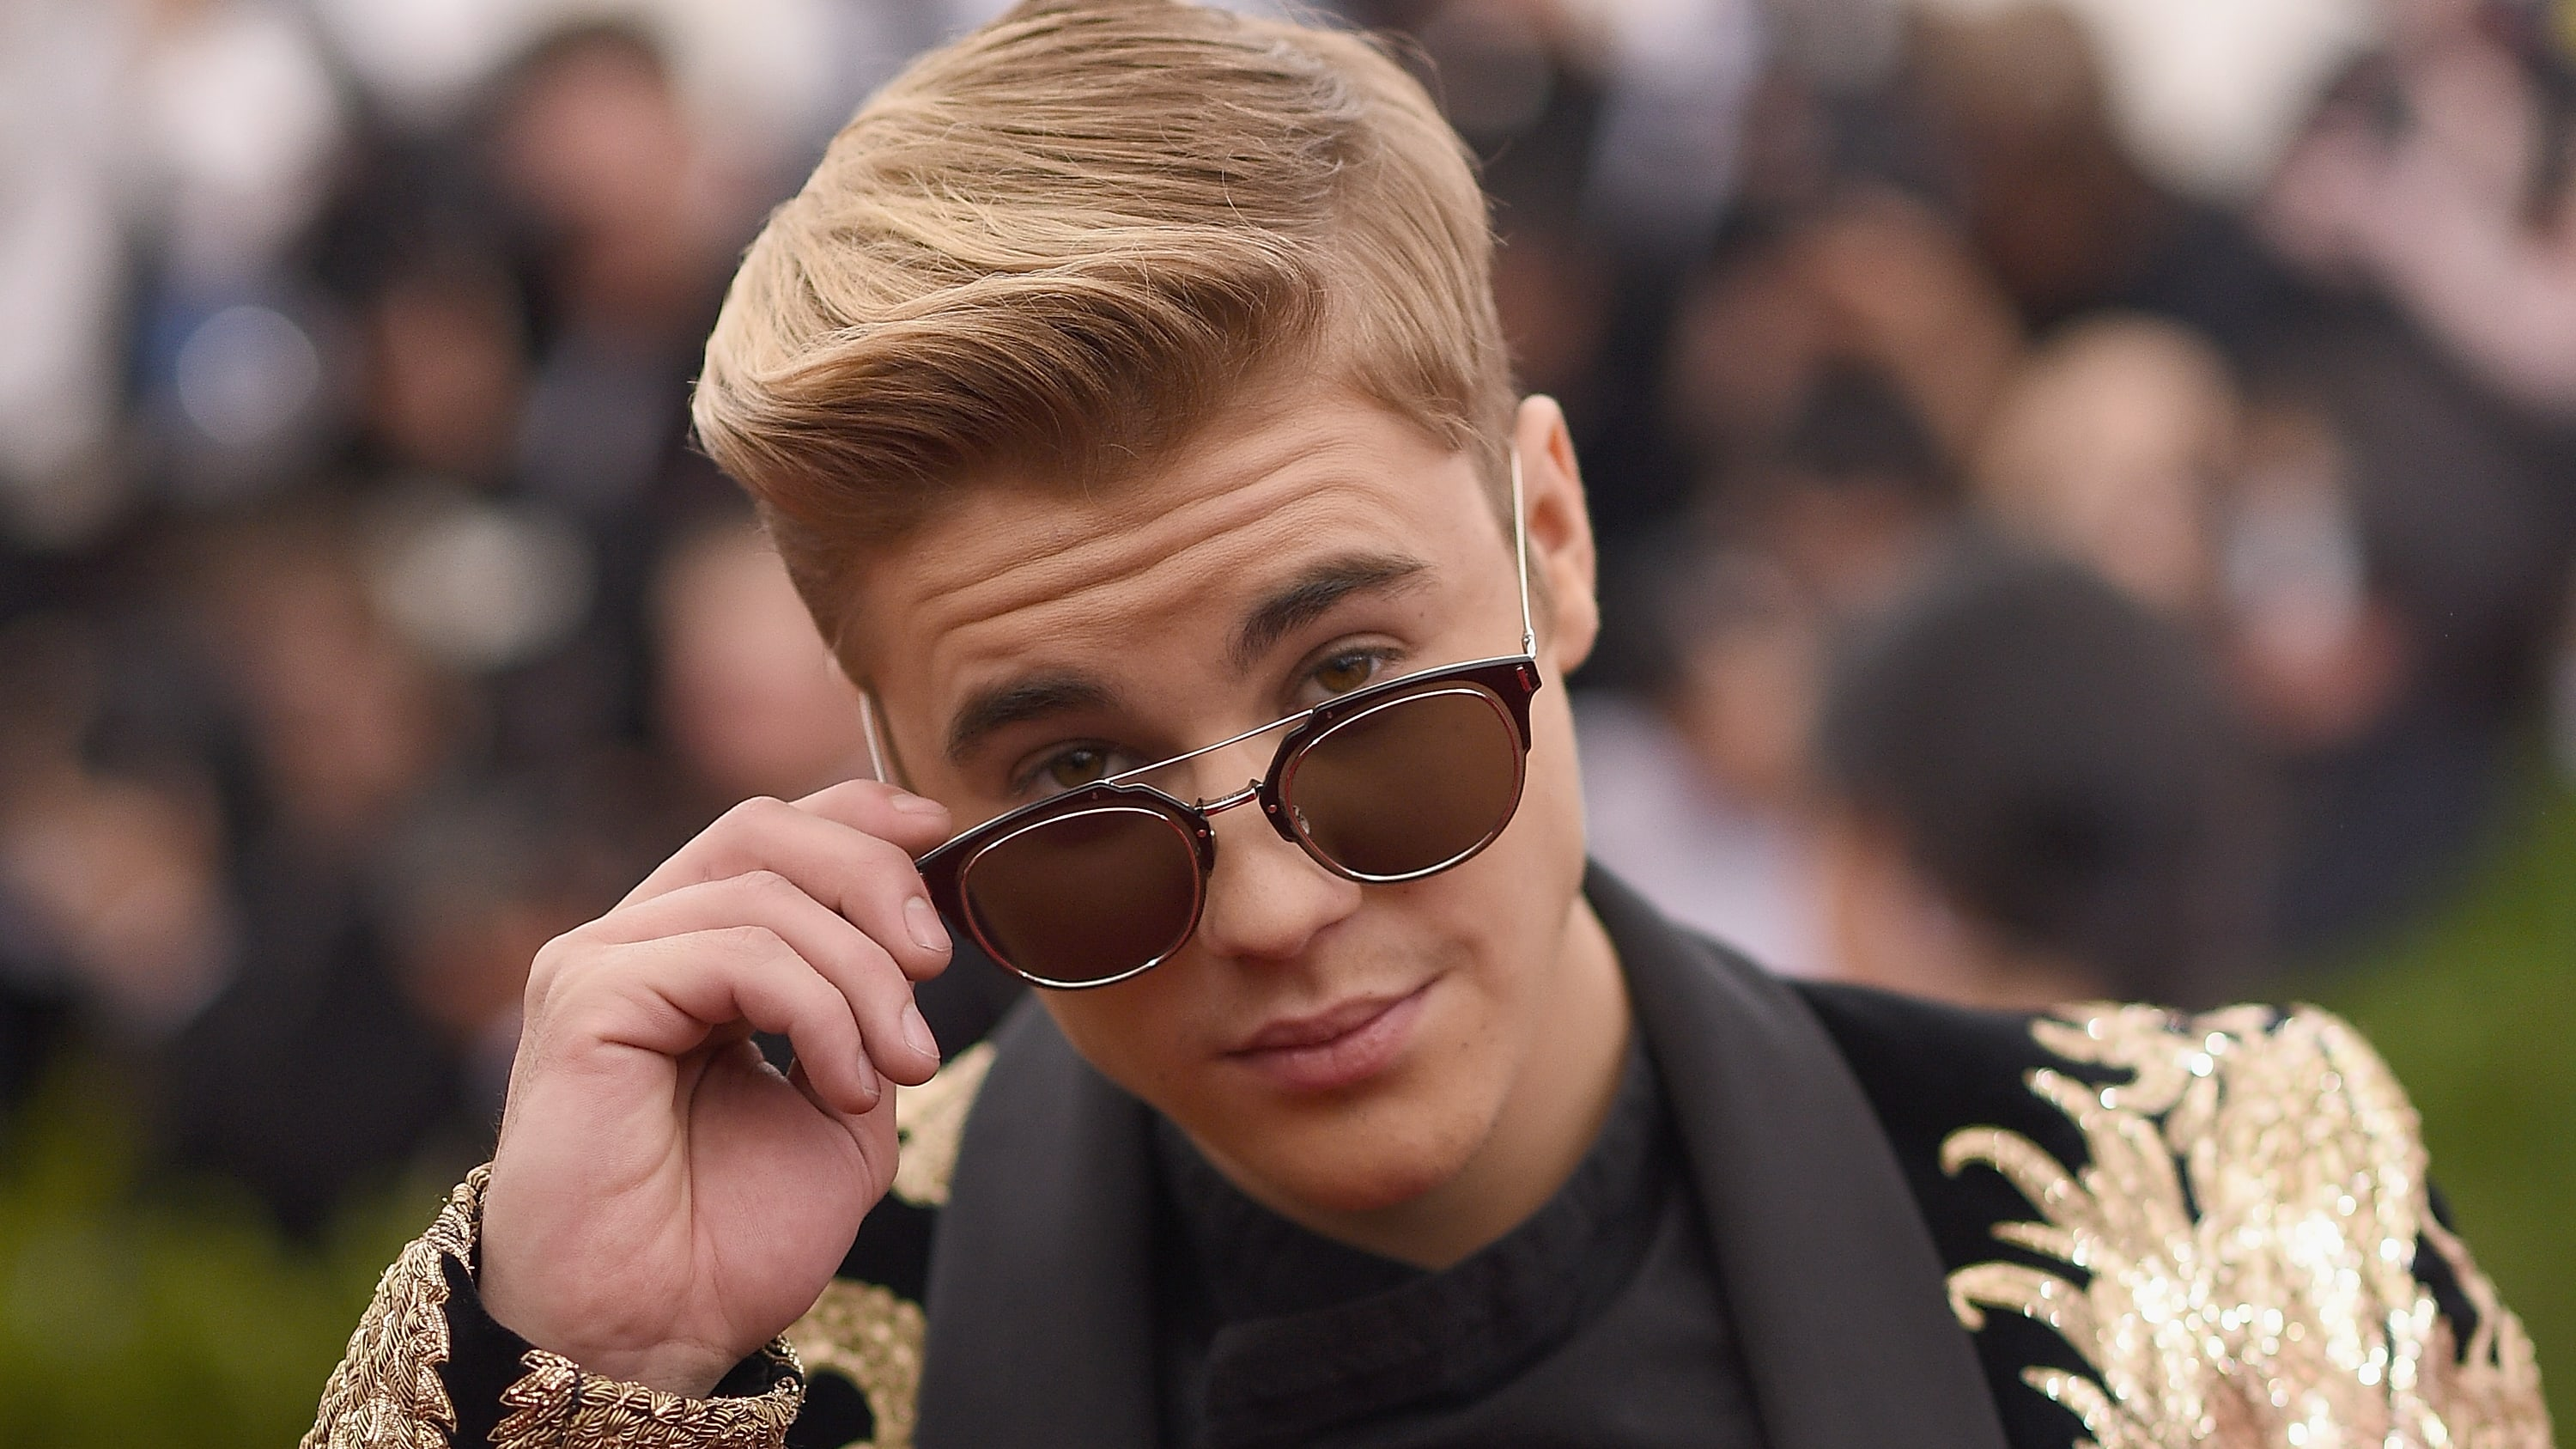 NEW YORK, NY - MAY 04:   Singer Justin Bieber attends the 'China: Through The Looking Glass' Costume Institute Benefit Gala at the Metropolitan Museum of Art on May 4, 2015 in New York City.  (Photo by Dimitrios Kambouris/Getty Images)